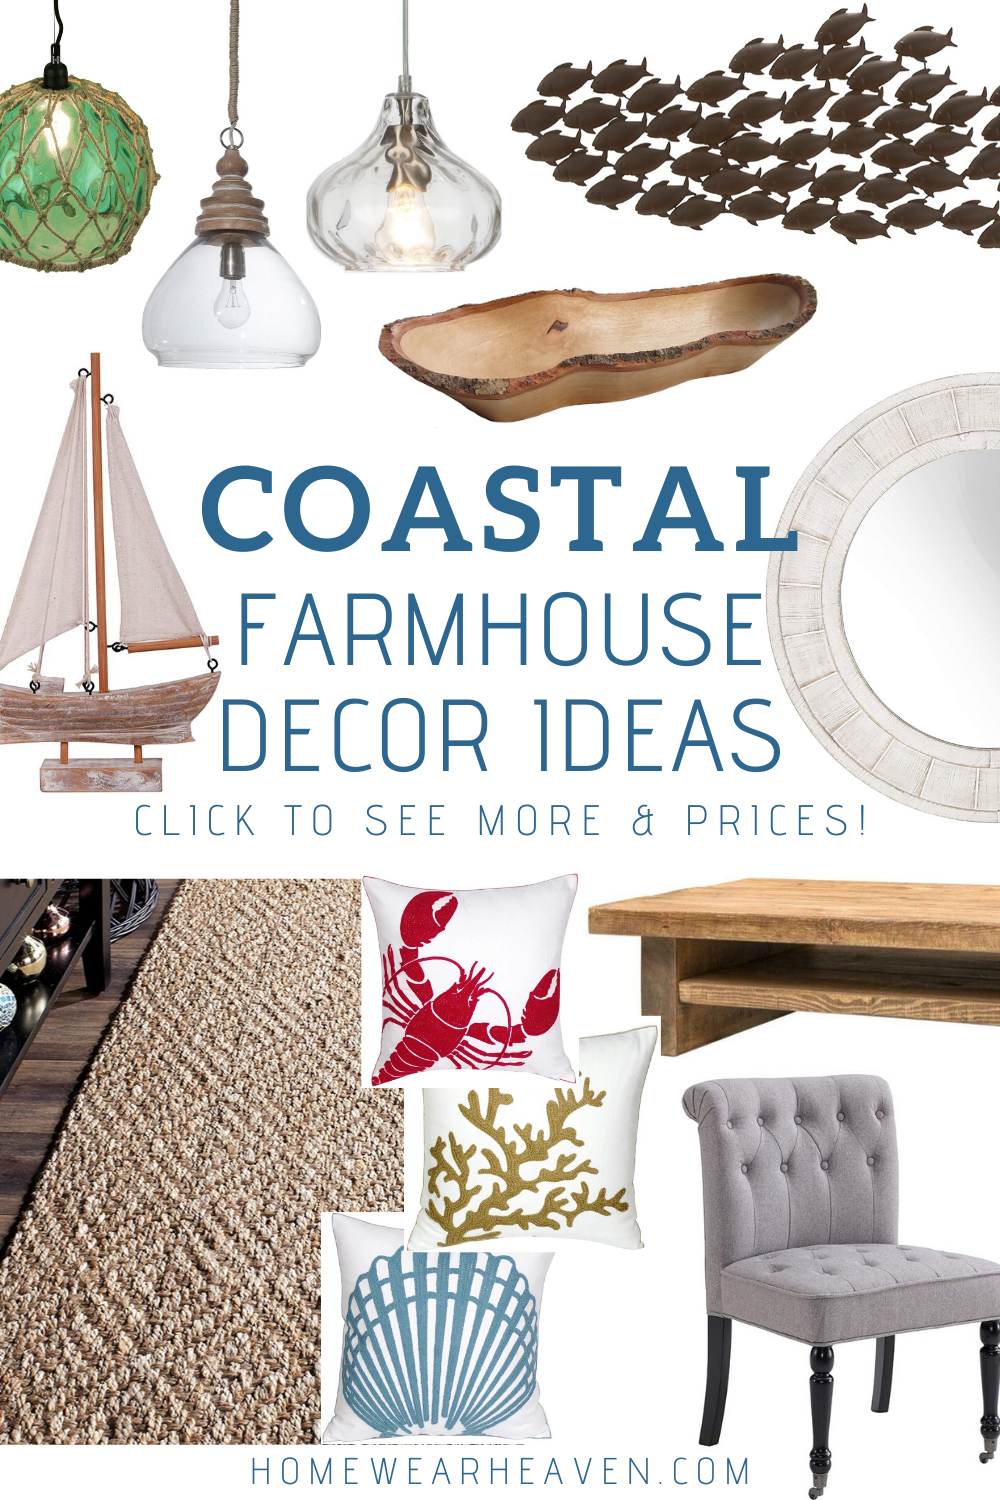 All Categories | The Nautical Decor Store in 2020 | Coastal farmhouse decor,  Farmhouse decor, Ocean themed bathroom decor